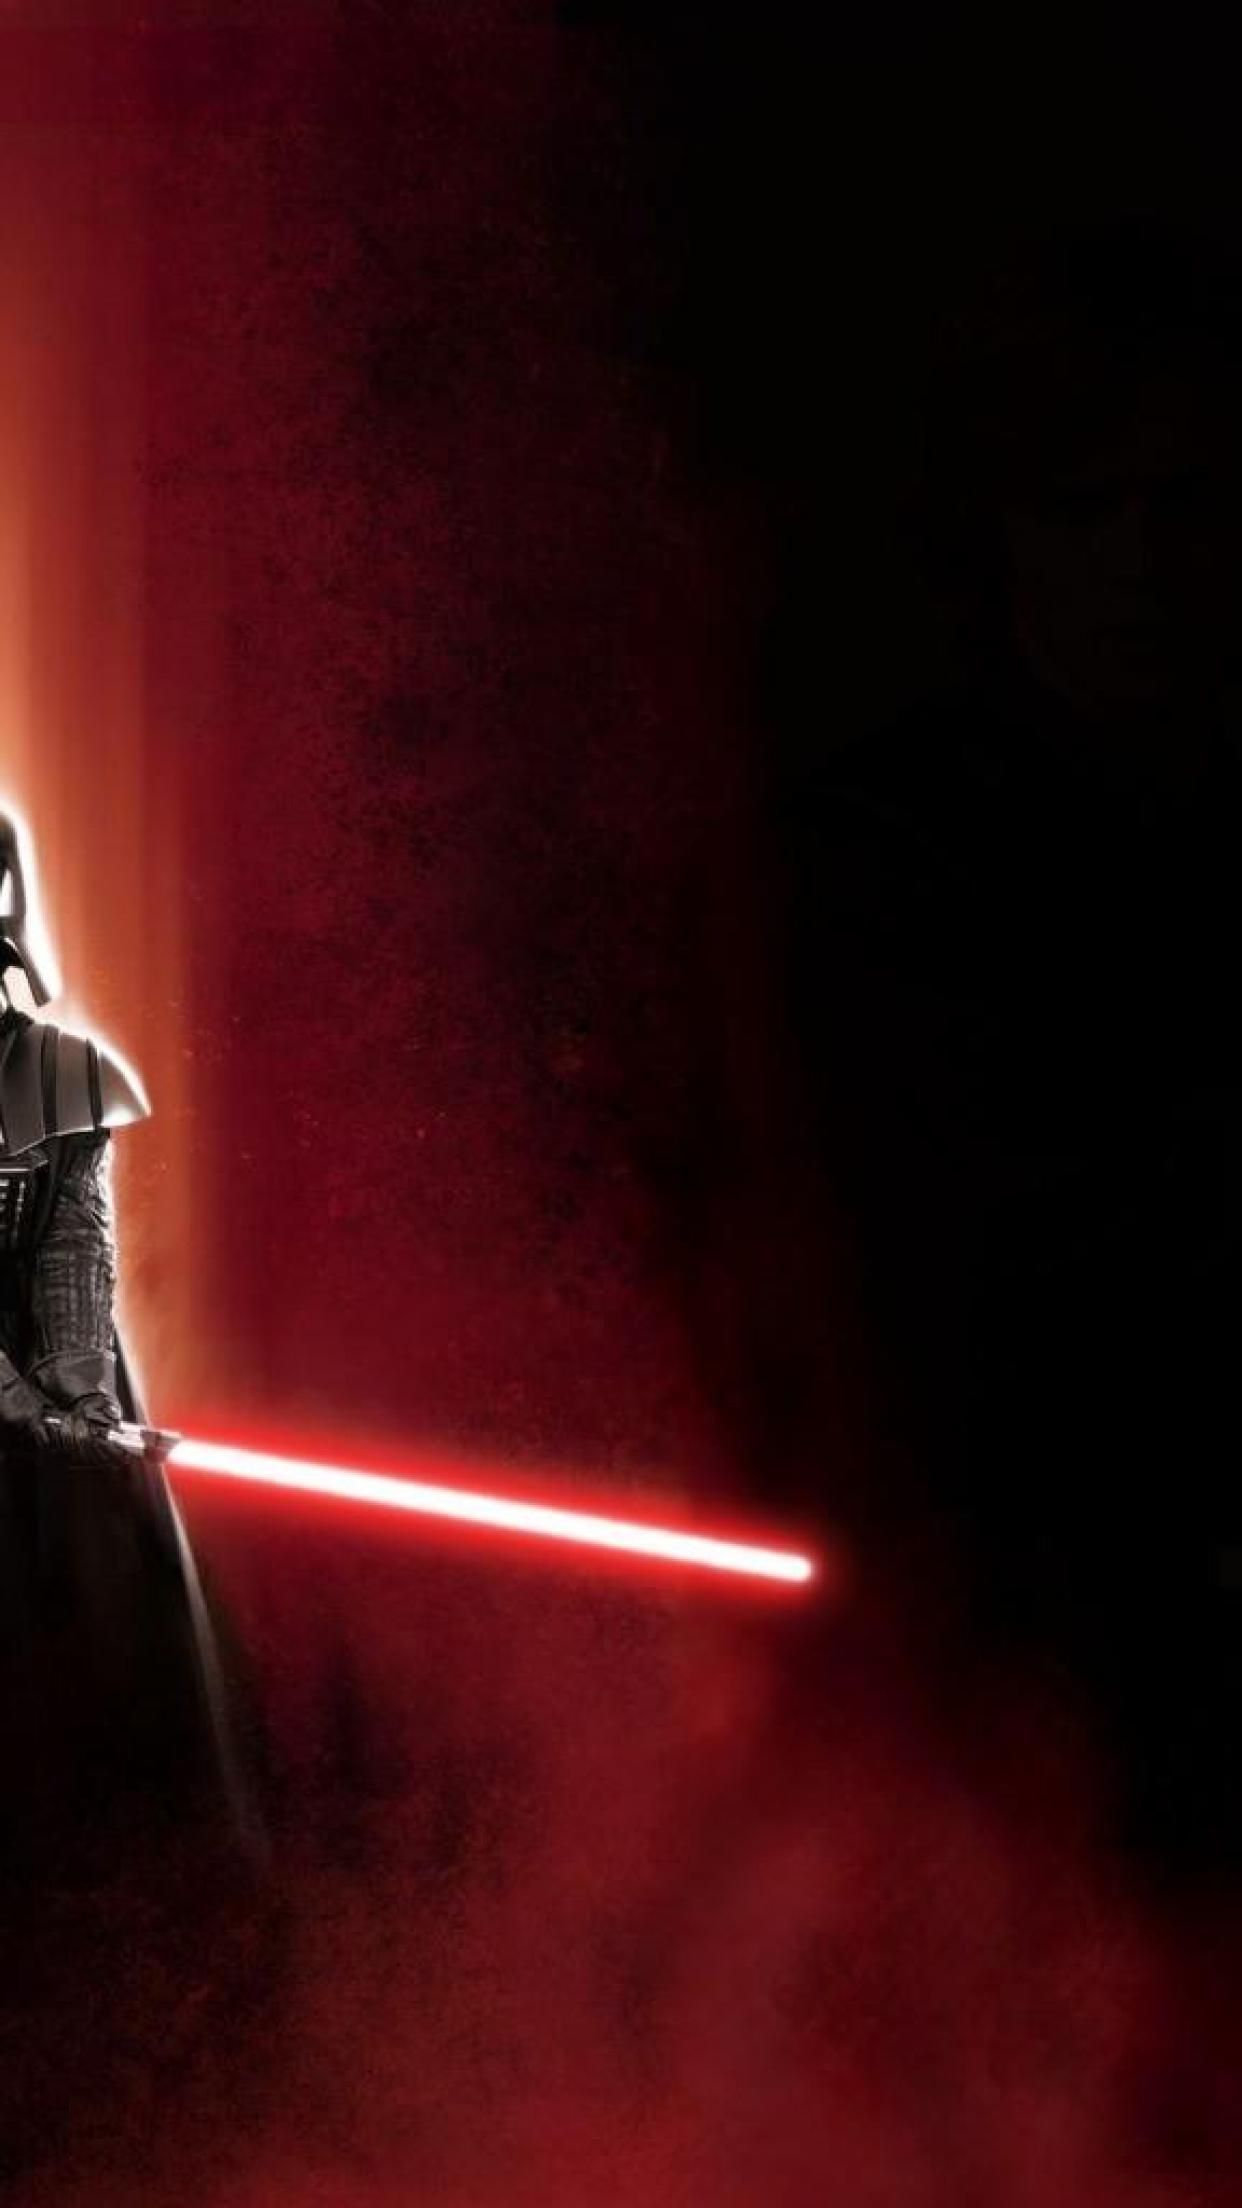 Sith Star Wars Iphone Wallpapers Top Free Sith Star Wars Iphone Backgrounds Wallpaperaccess